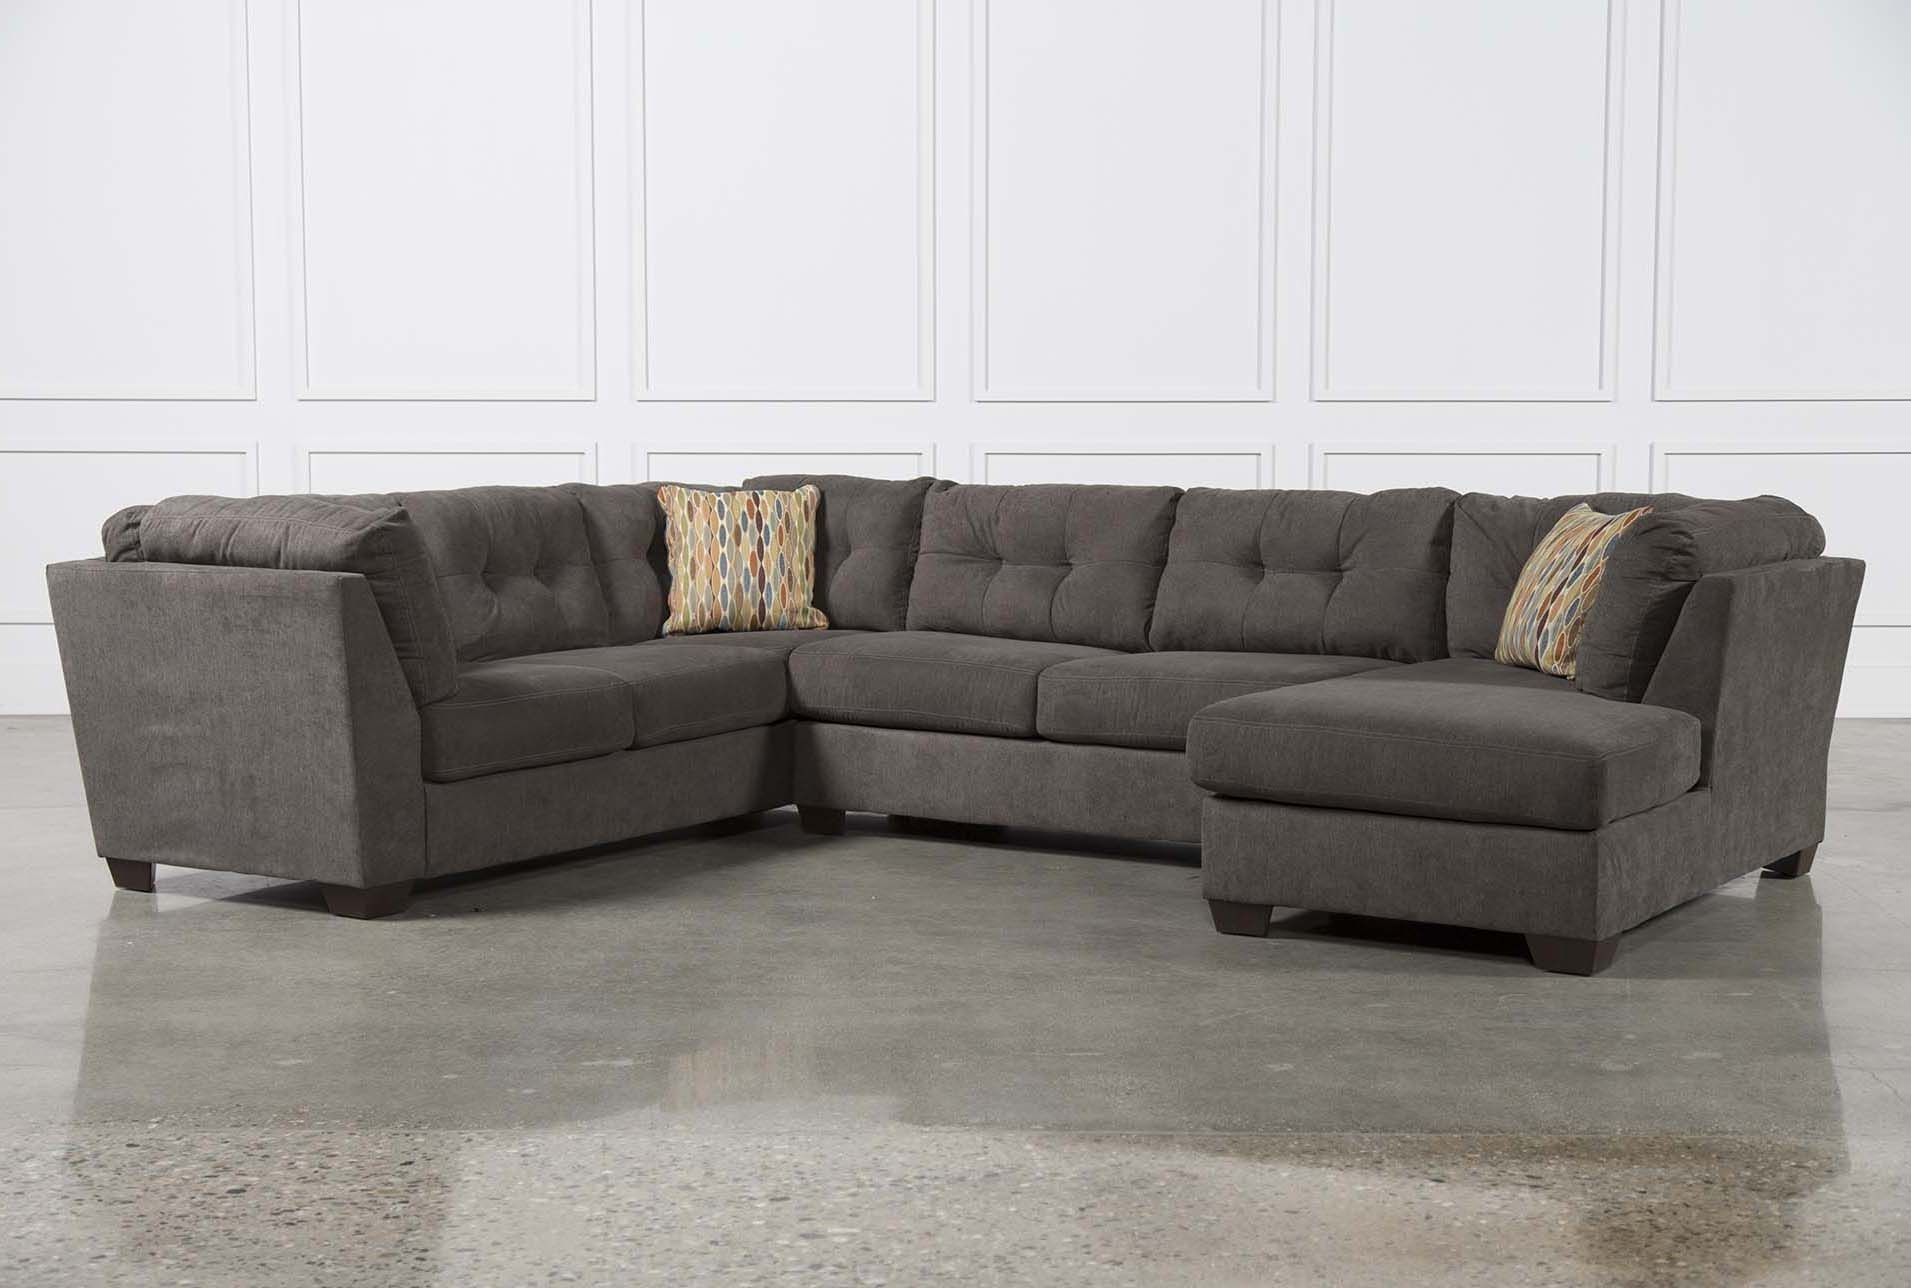 Norfolk Grey 3 Piece Sectional W/laf Chaise throughout Norfolk Grey 3 Piece Sectionals With Laf Chaise (Image 21 of 30)